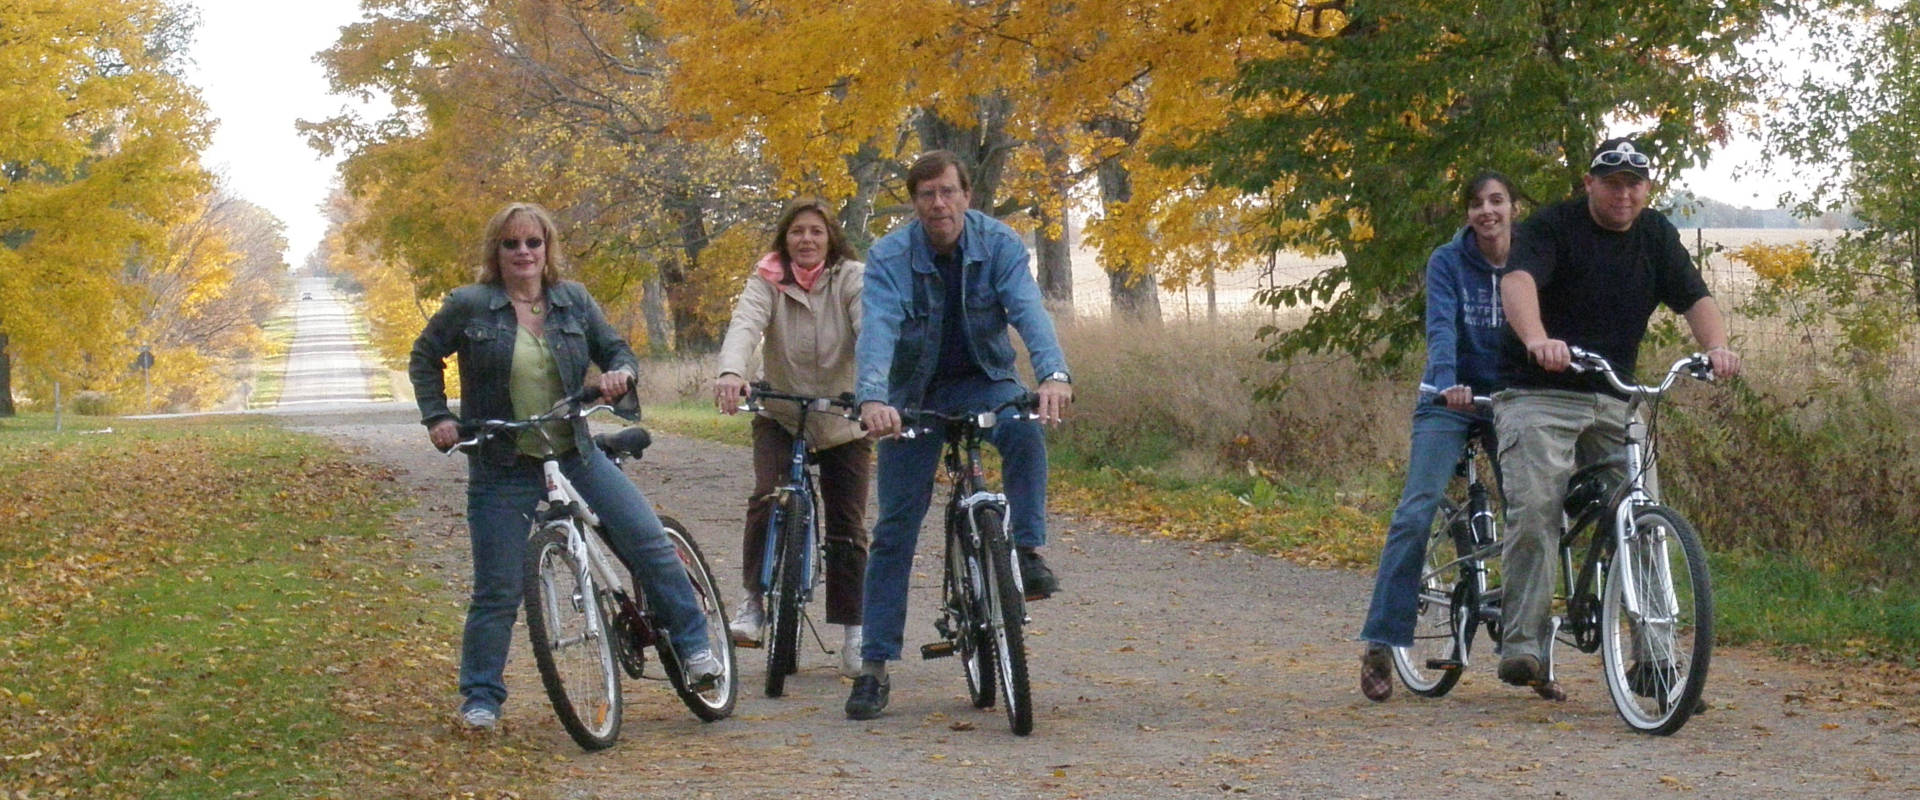 Bike and cycling trails along the Grand River near Paris Ontario